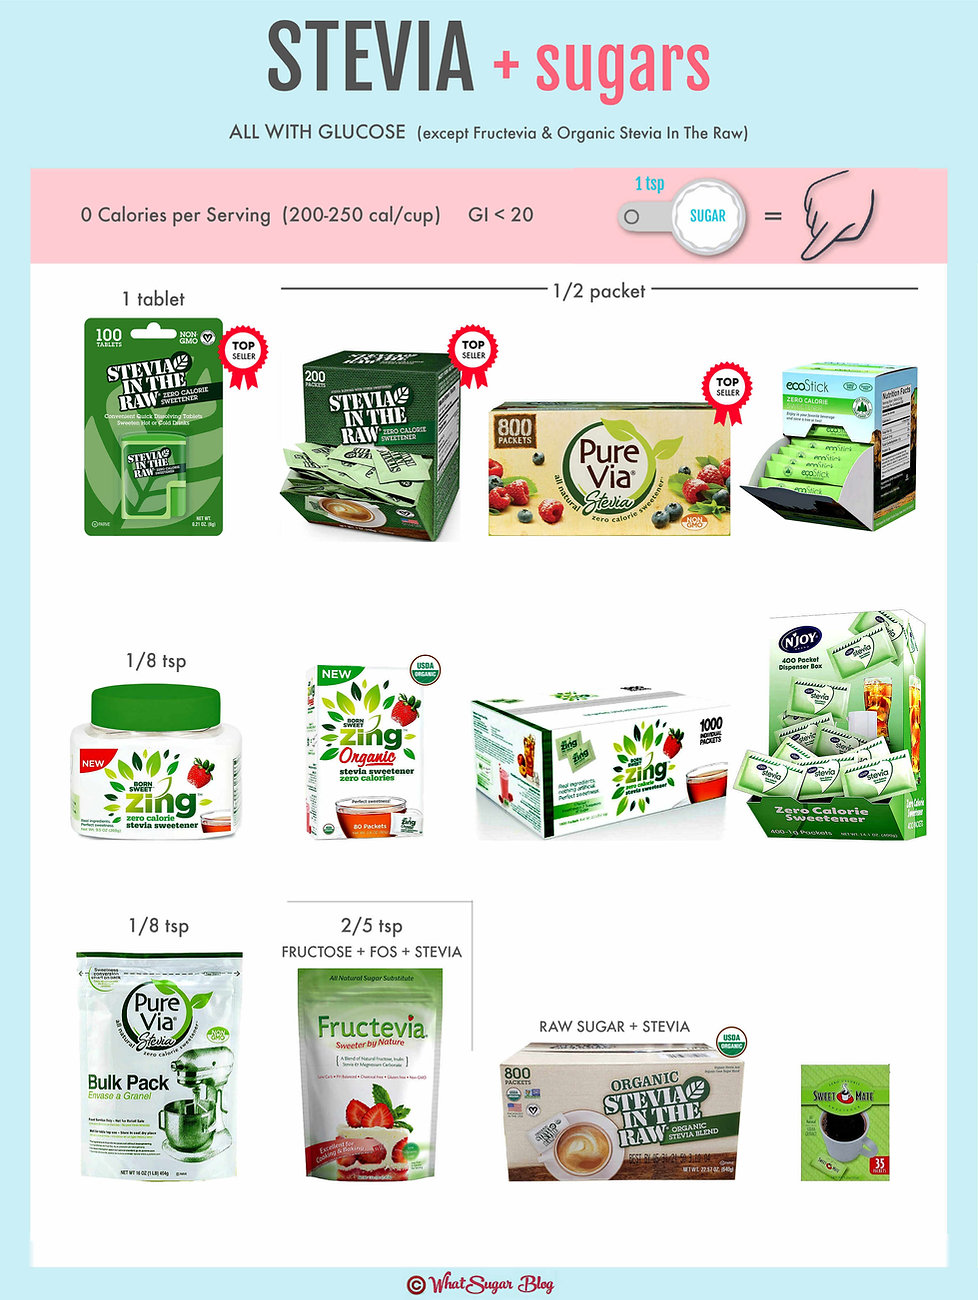 Stevia with Glucose & Raw Sugar Conversi